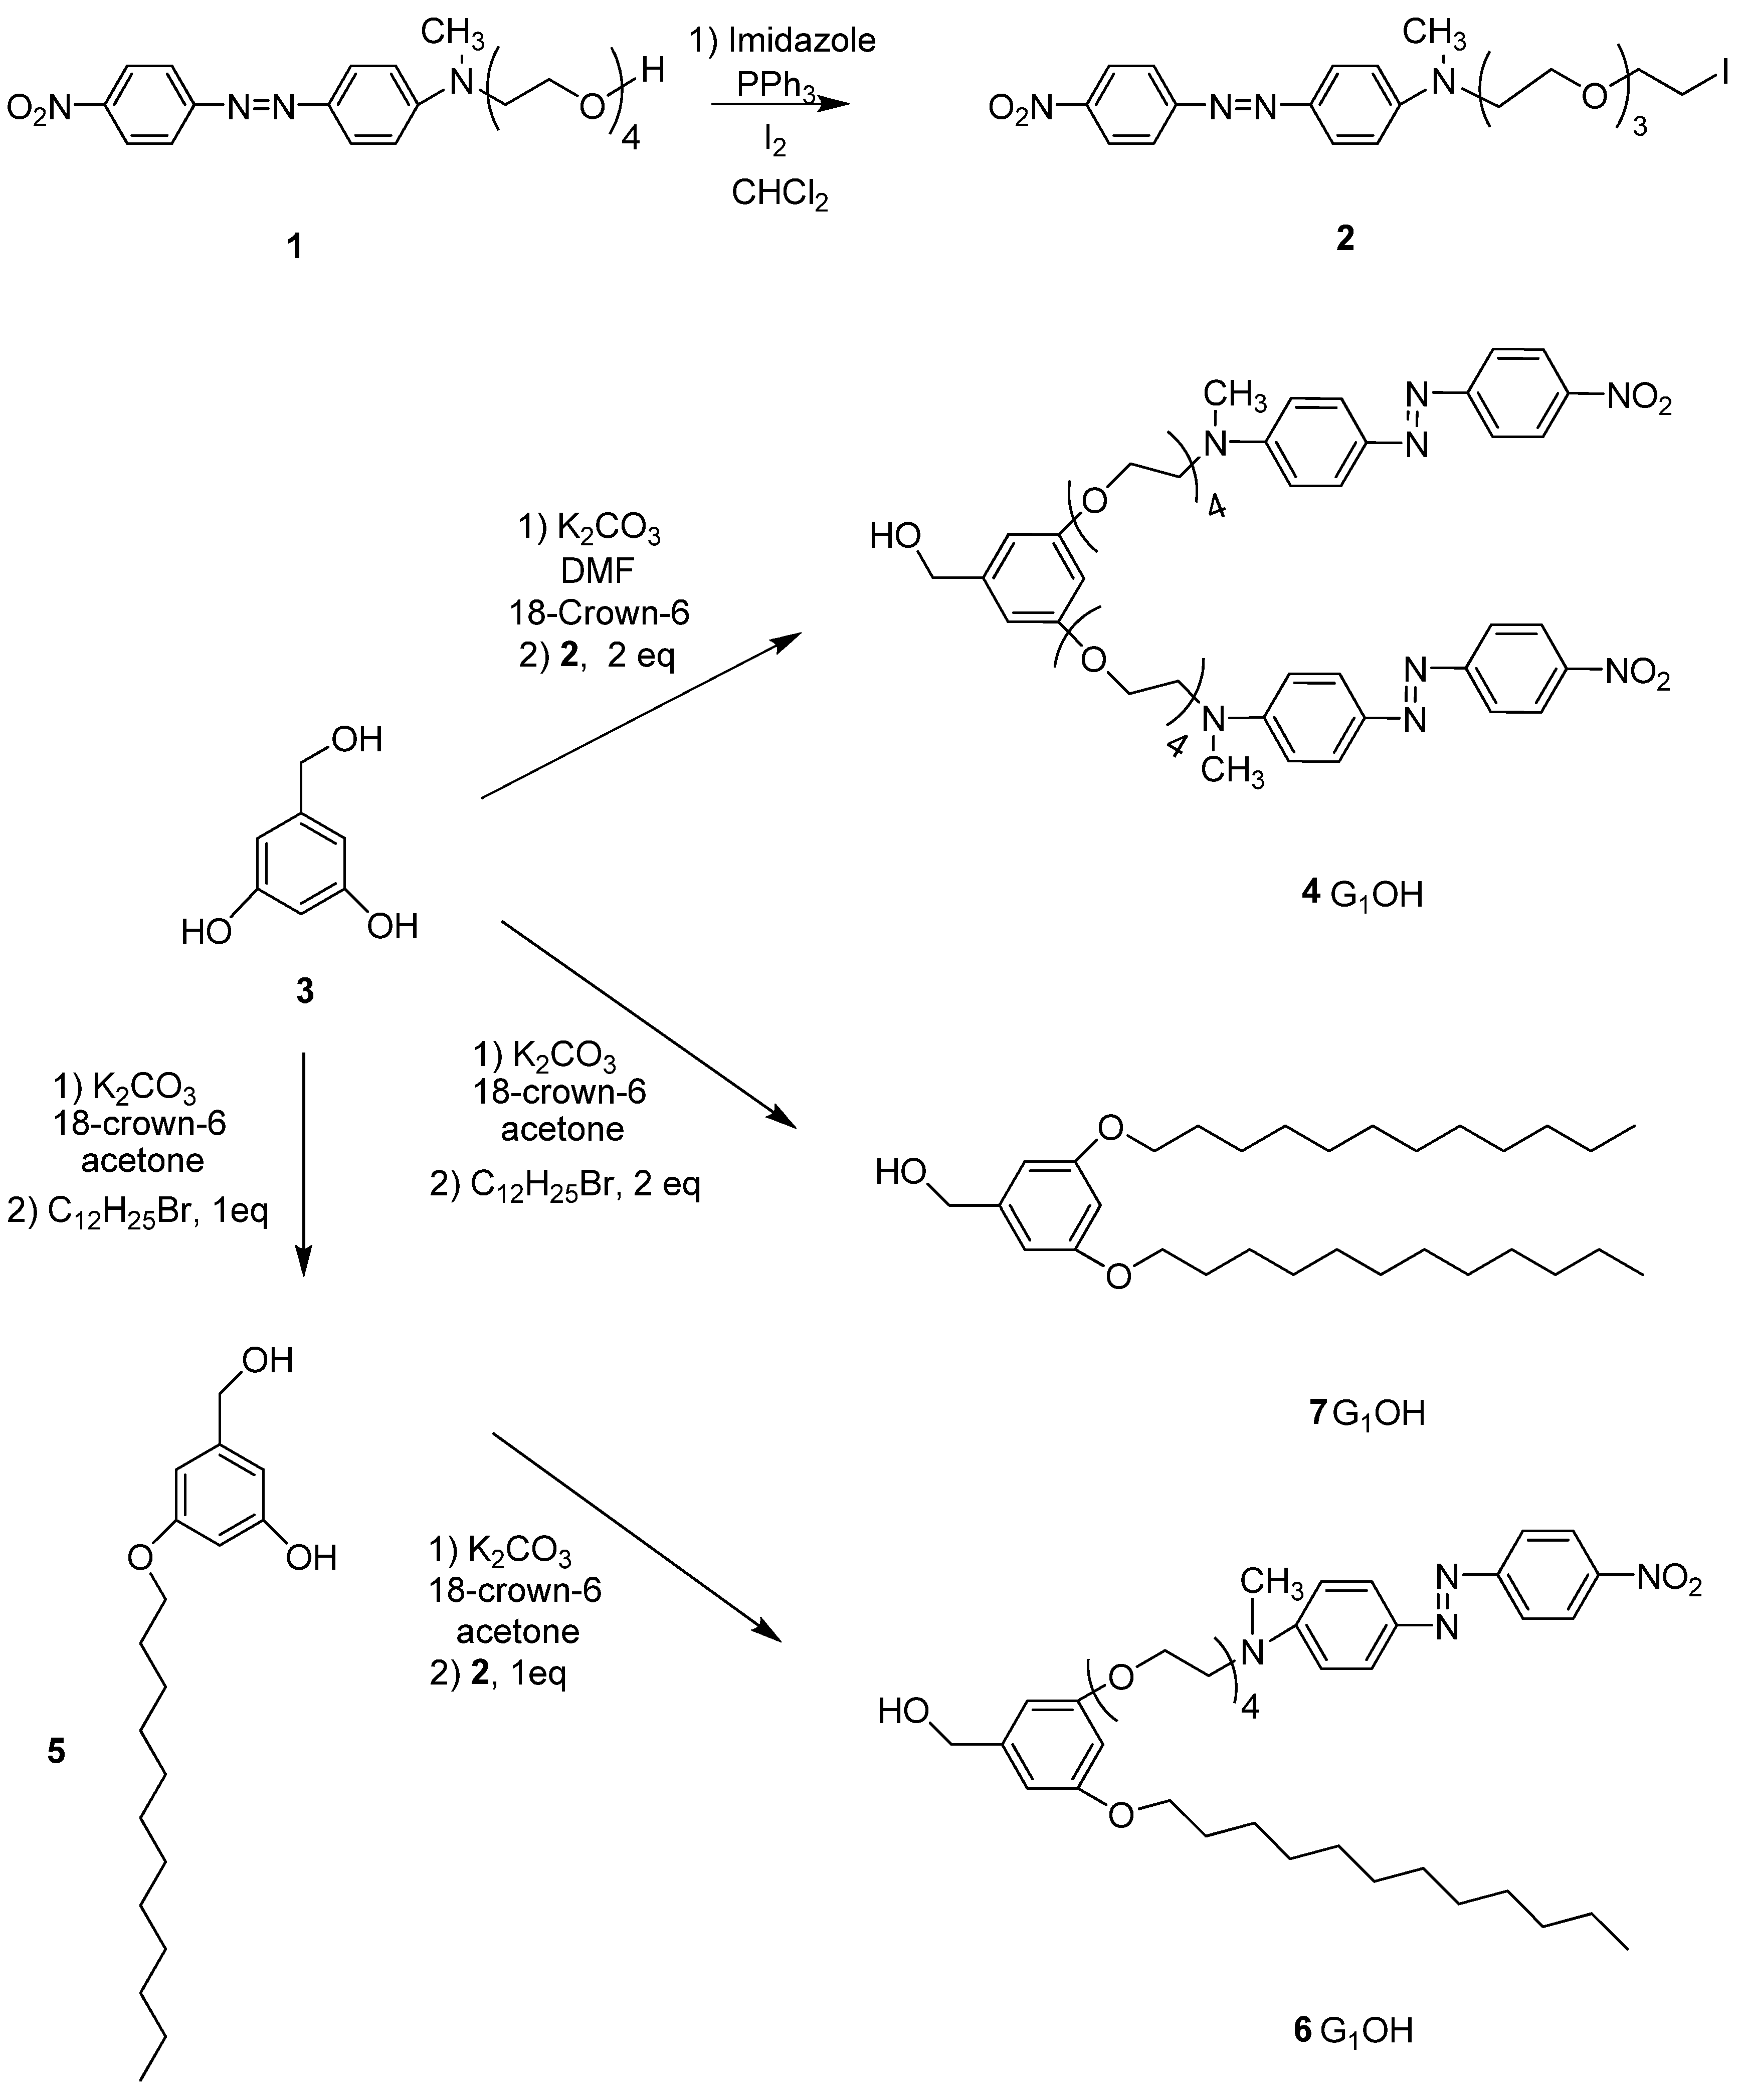 ethylene glycol properties synthesis and applications